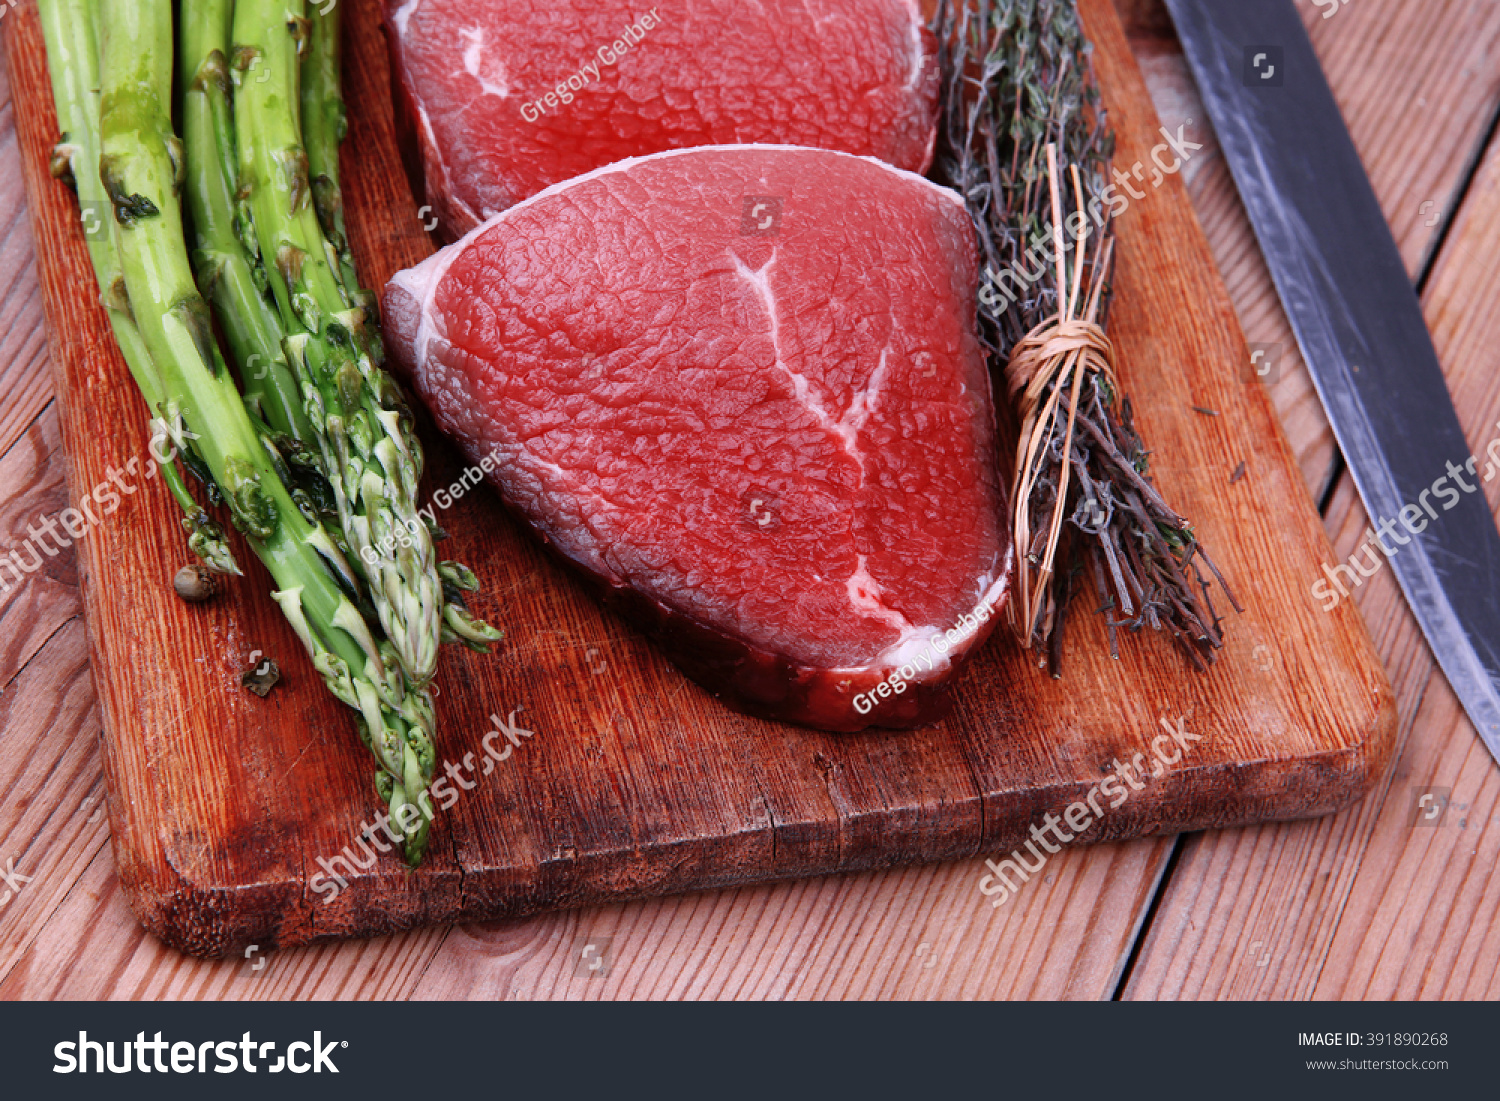 Prime Fillet Meat Dry Raw Beef Stock Photo (Edit Now) 391890268